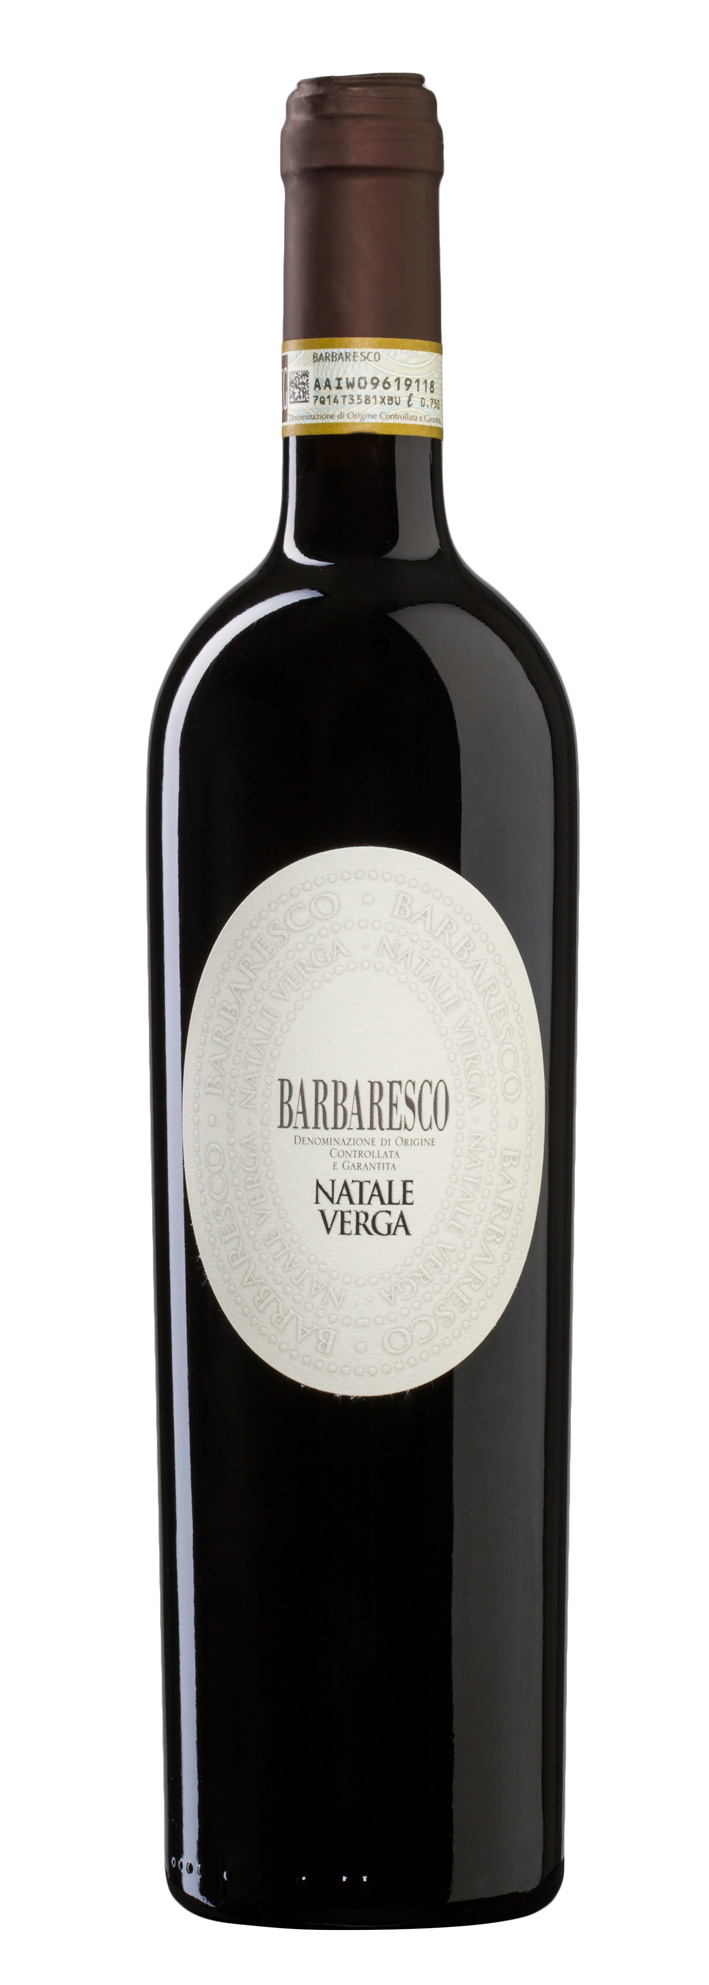 BARBARESCO DOCG 2012 NATALE VERGA 0,75l 14%